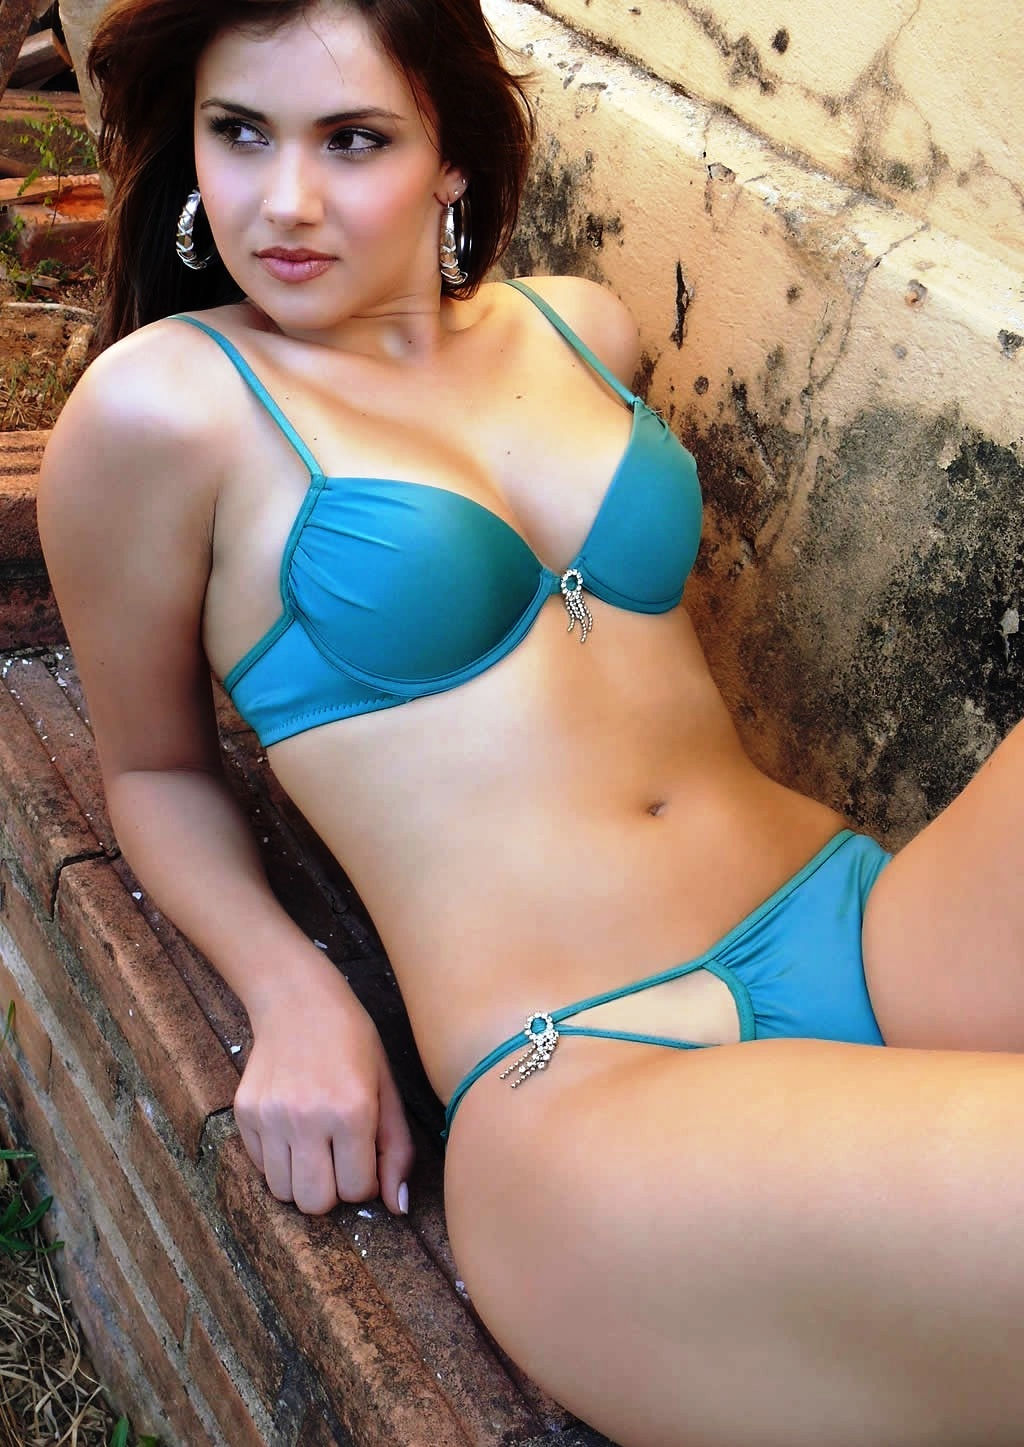 Hire a blonde call girl in Ghaziabad